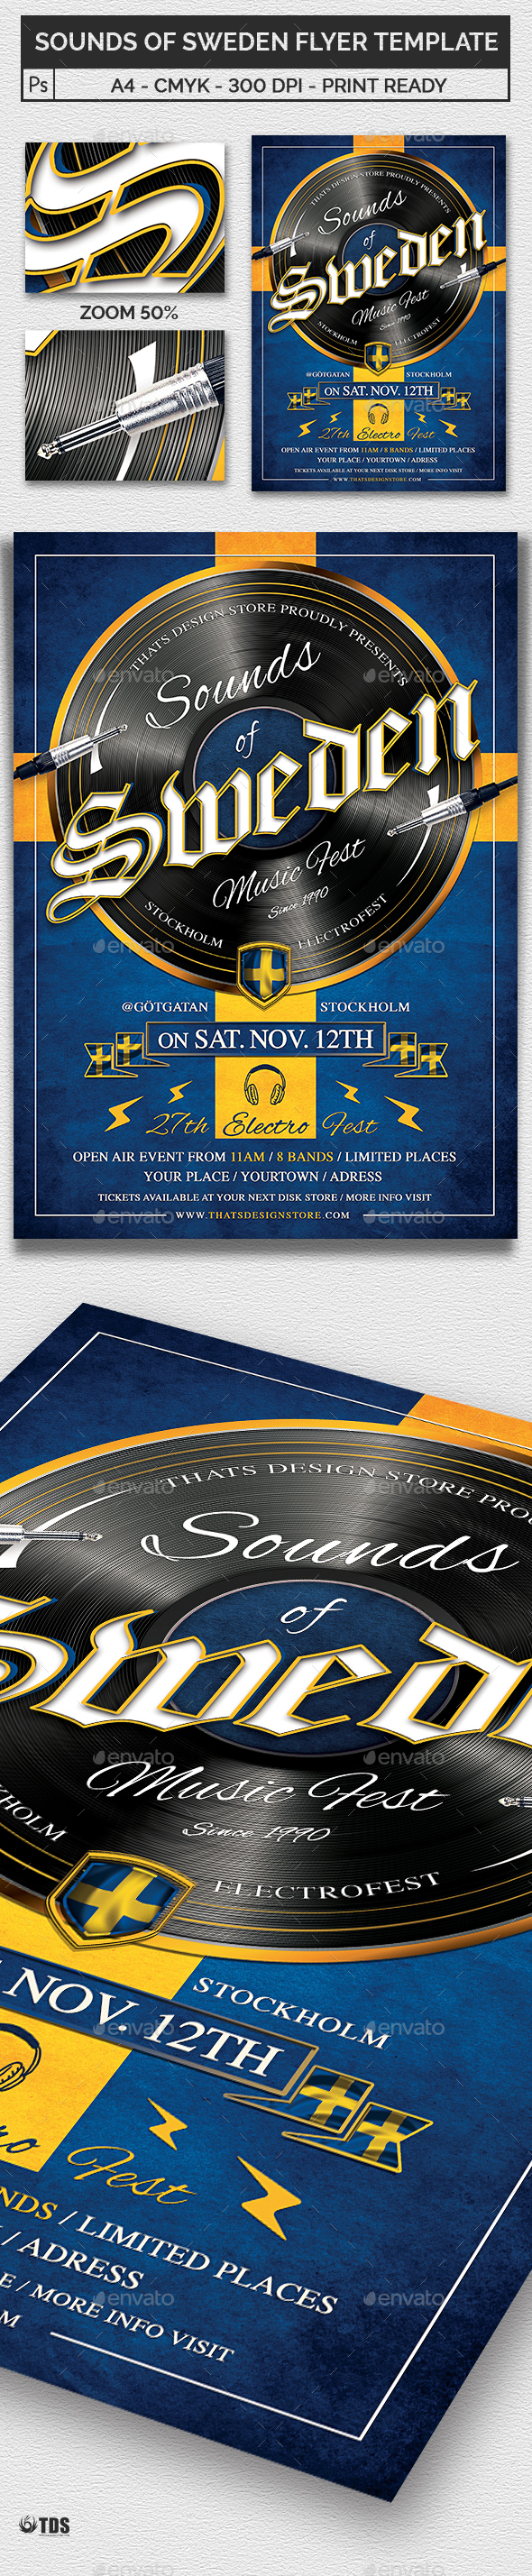 Sounds of Sweden Flyer Template - Clubs & Parties Events